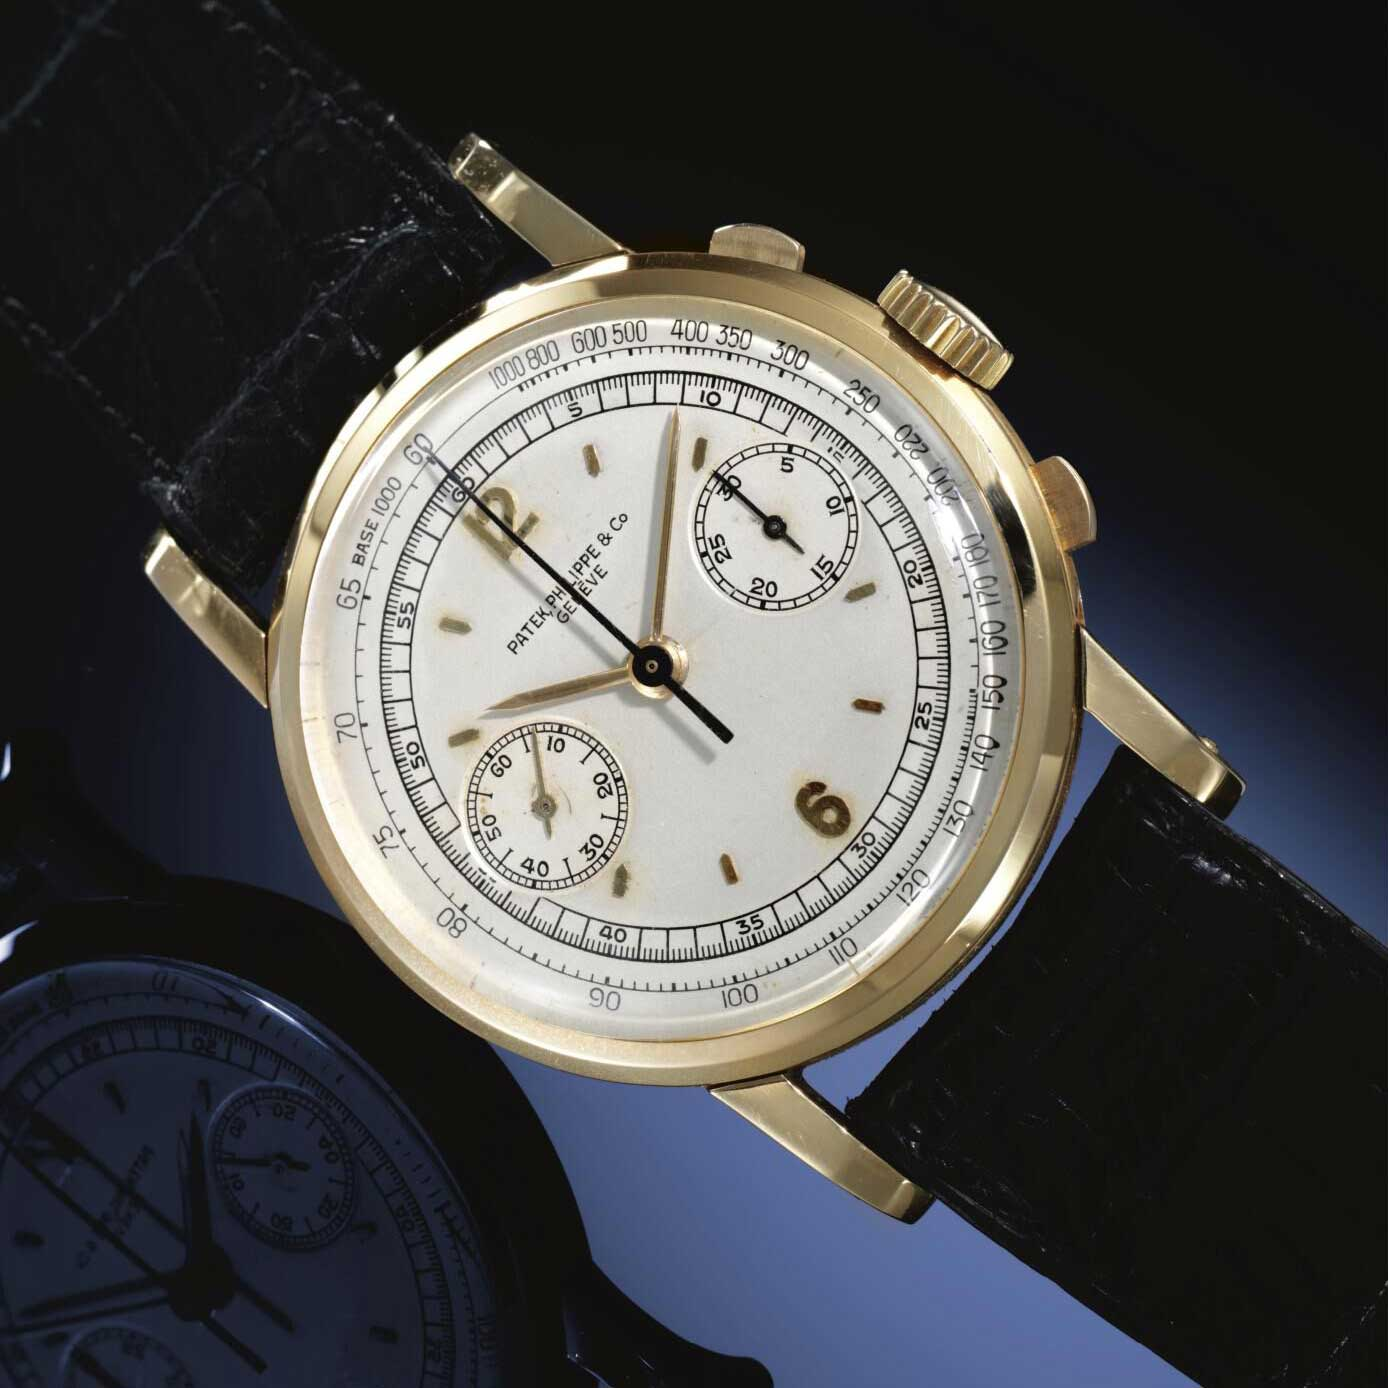 1941 Patek Philippe ref. 1506 pink gold chronograph with silvered dial, applied gold Arabic and baton numerals (Image: Sothebys.com)